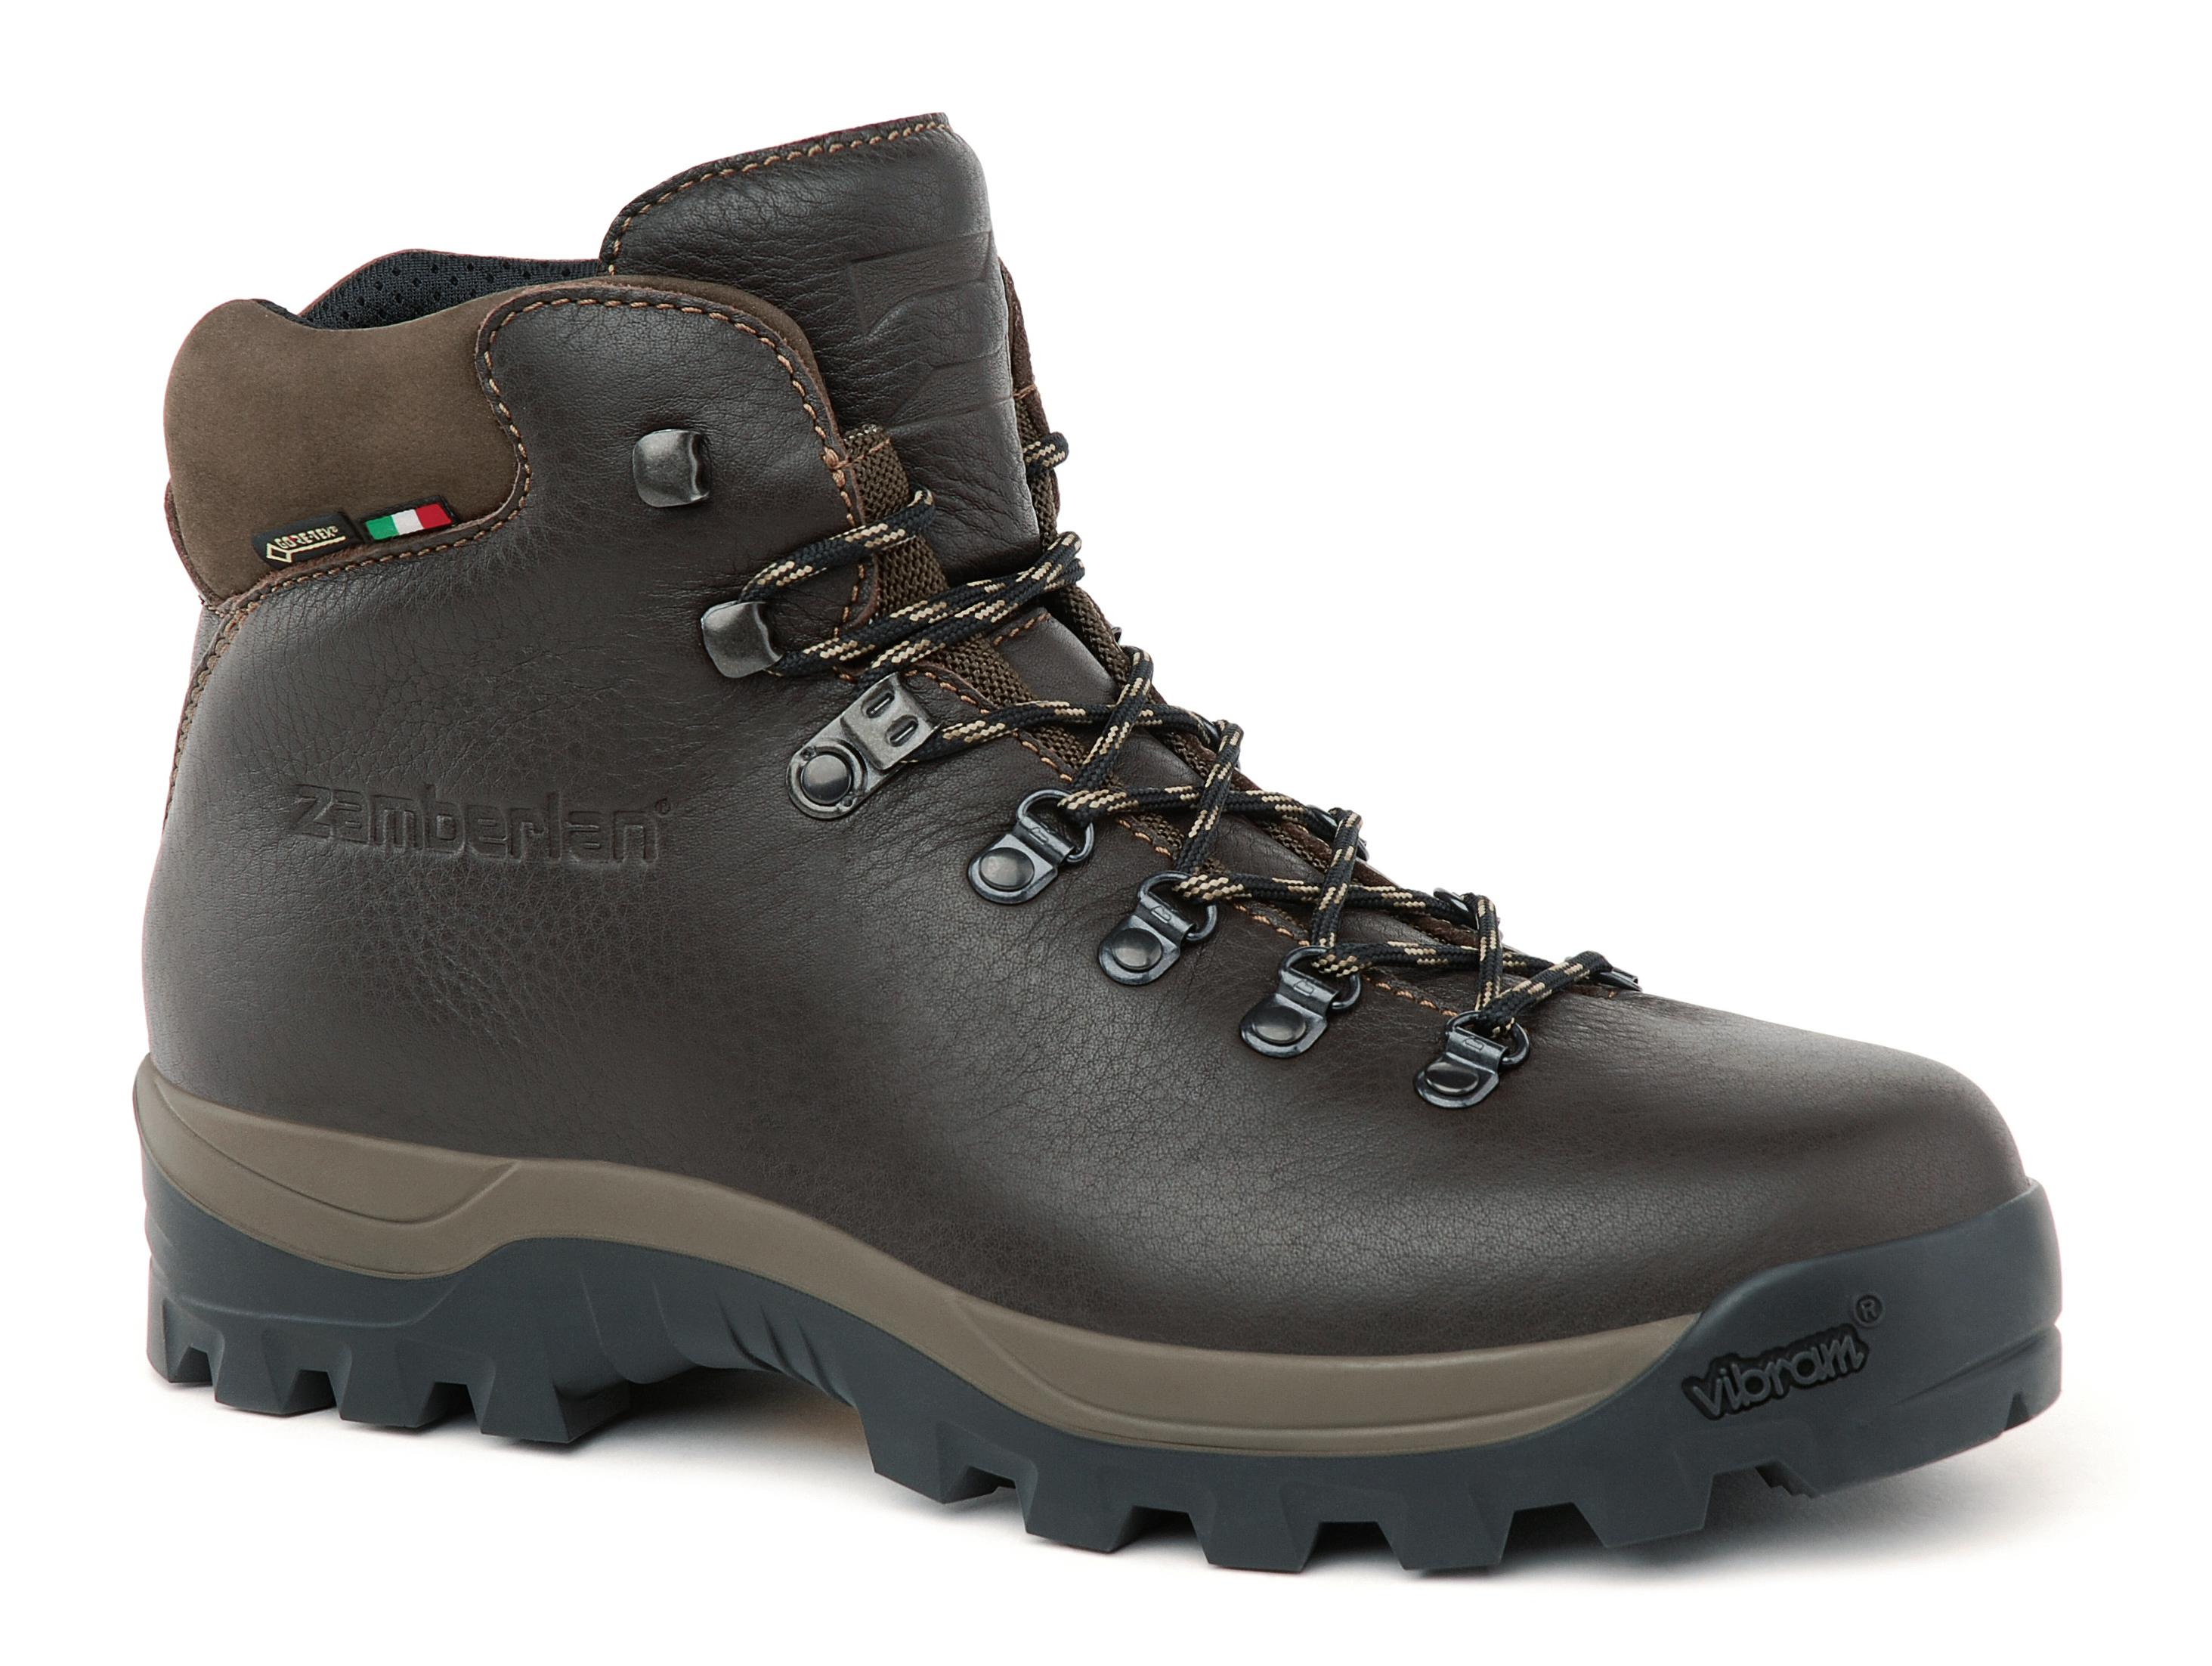 5030 SEQUOIA GTX    -     Hikingstiefel -   Brown